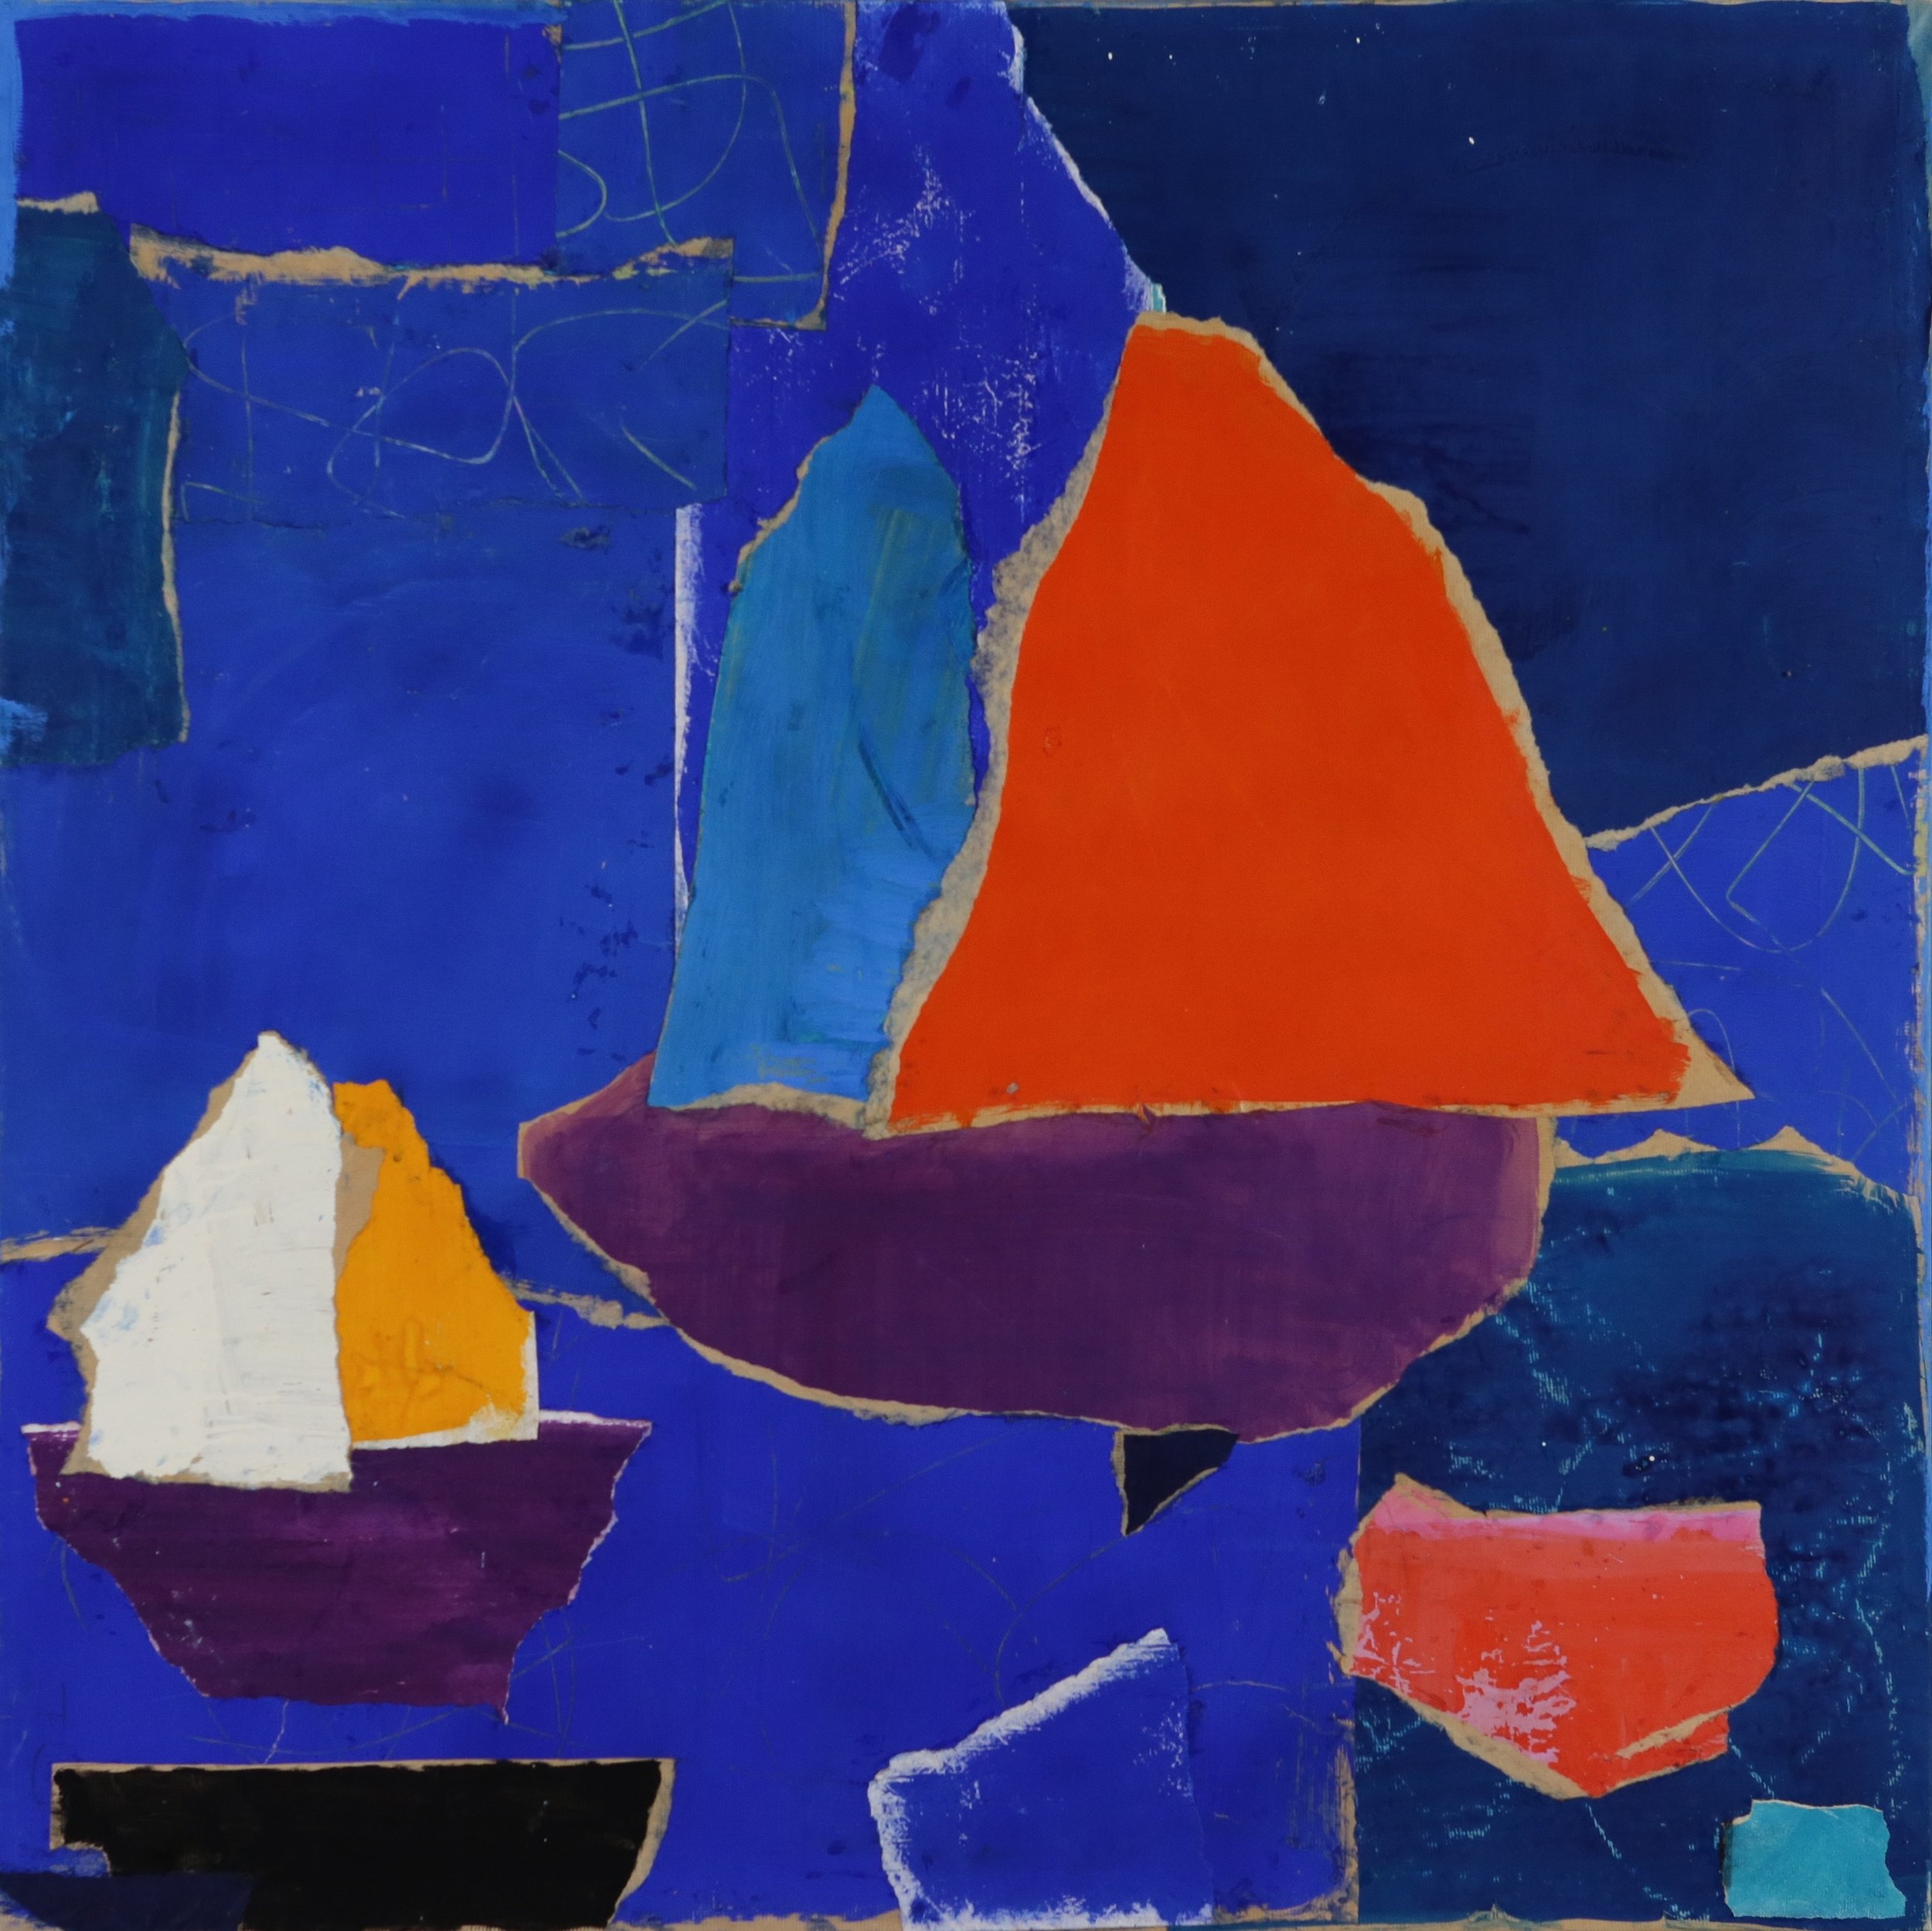 Charlotte Culot  Red Sail , 2014 mixed media on paper laid down on canvas 44 x 44 in. SOLD